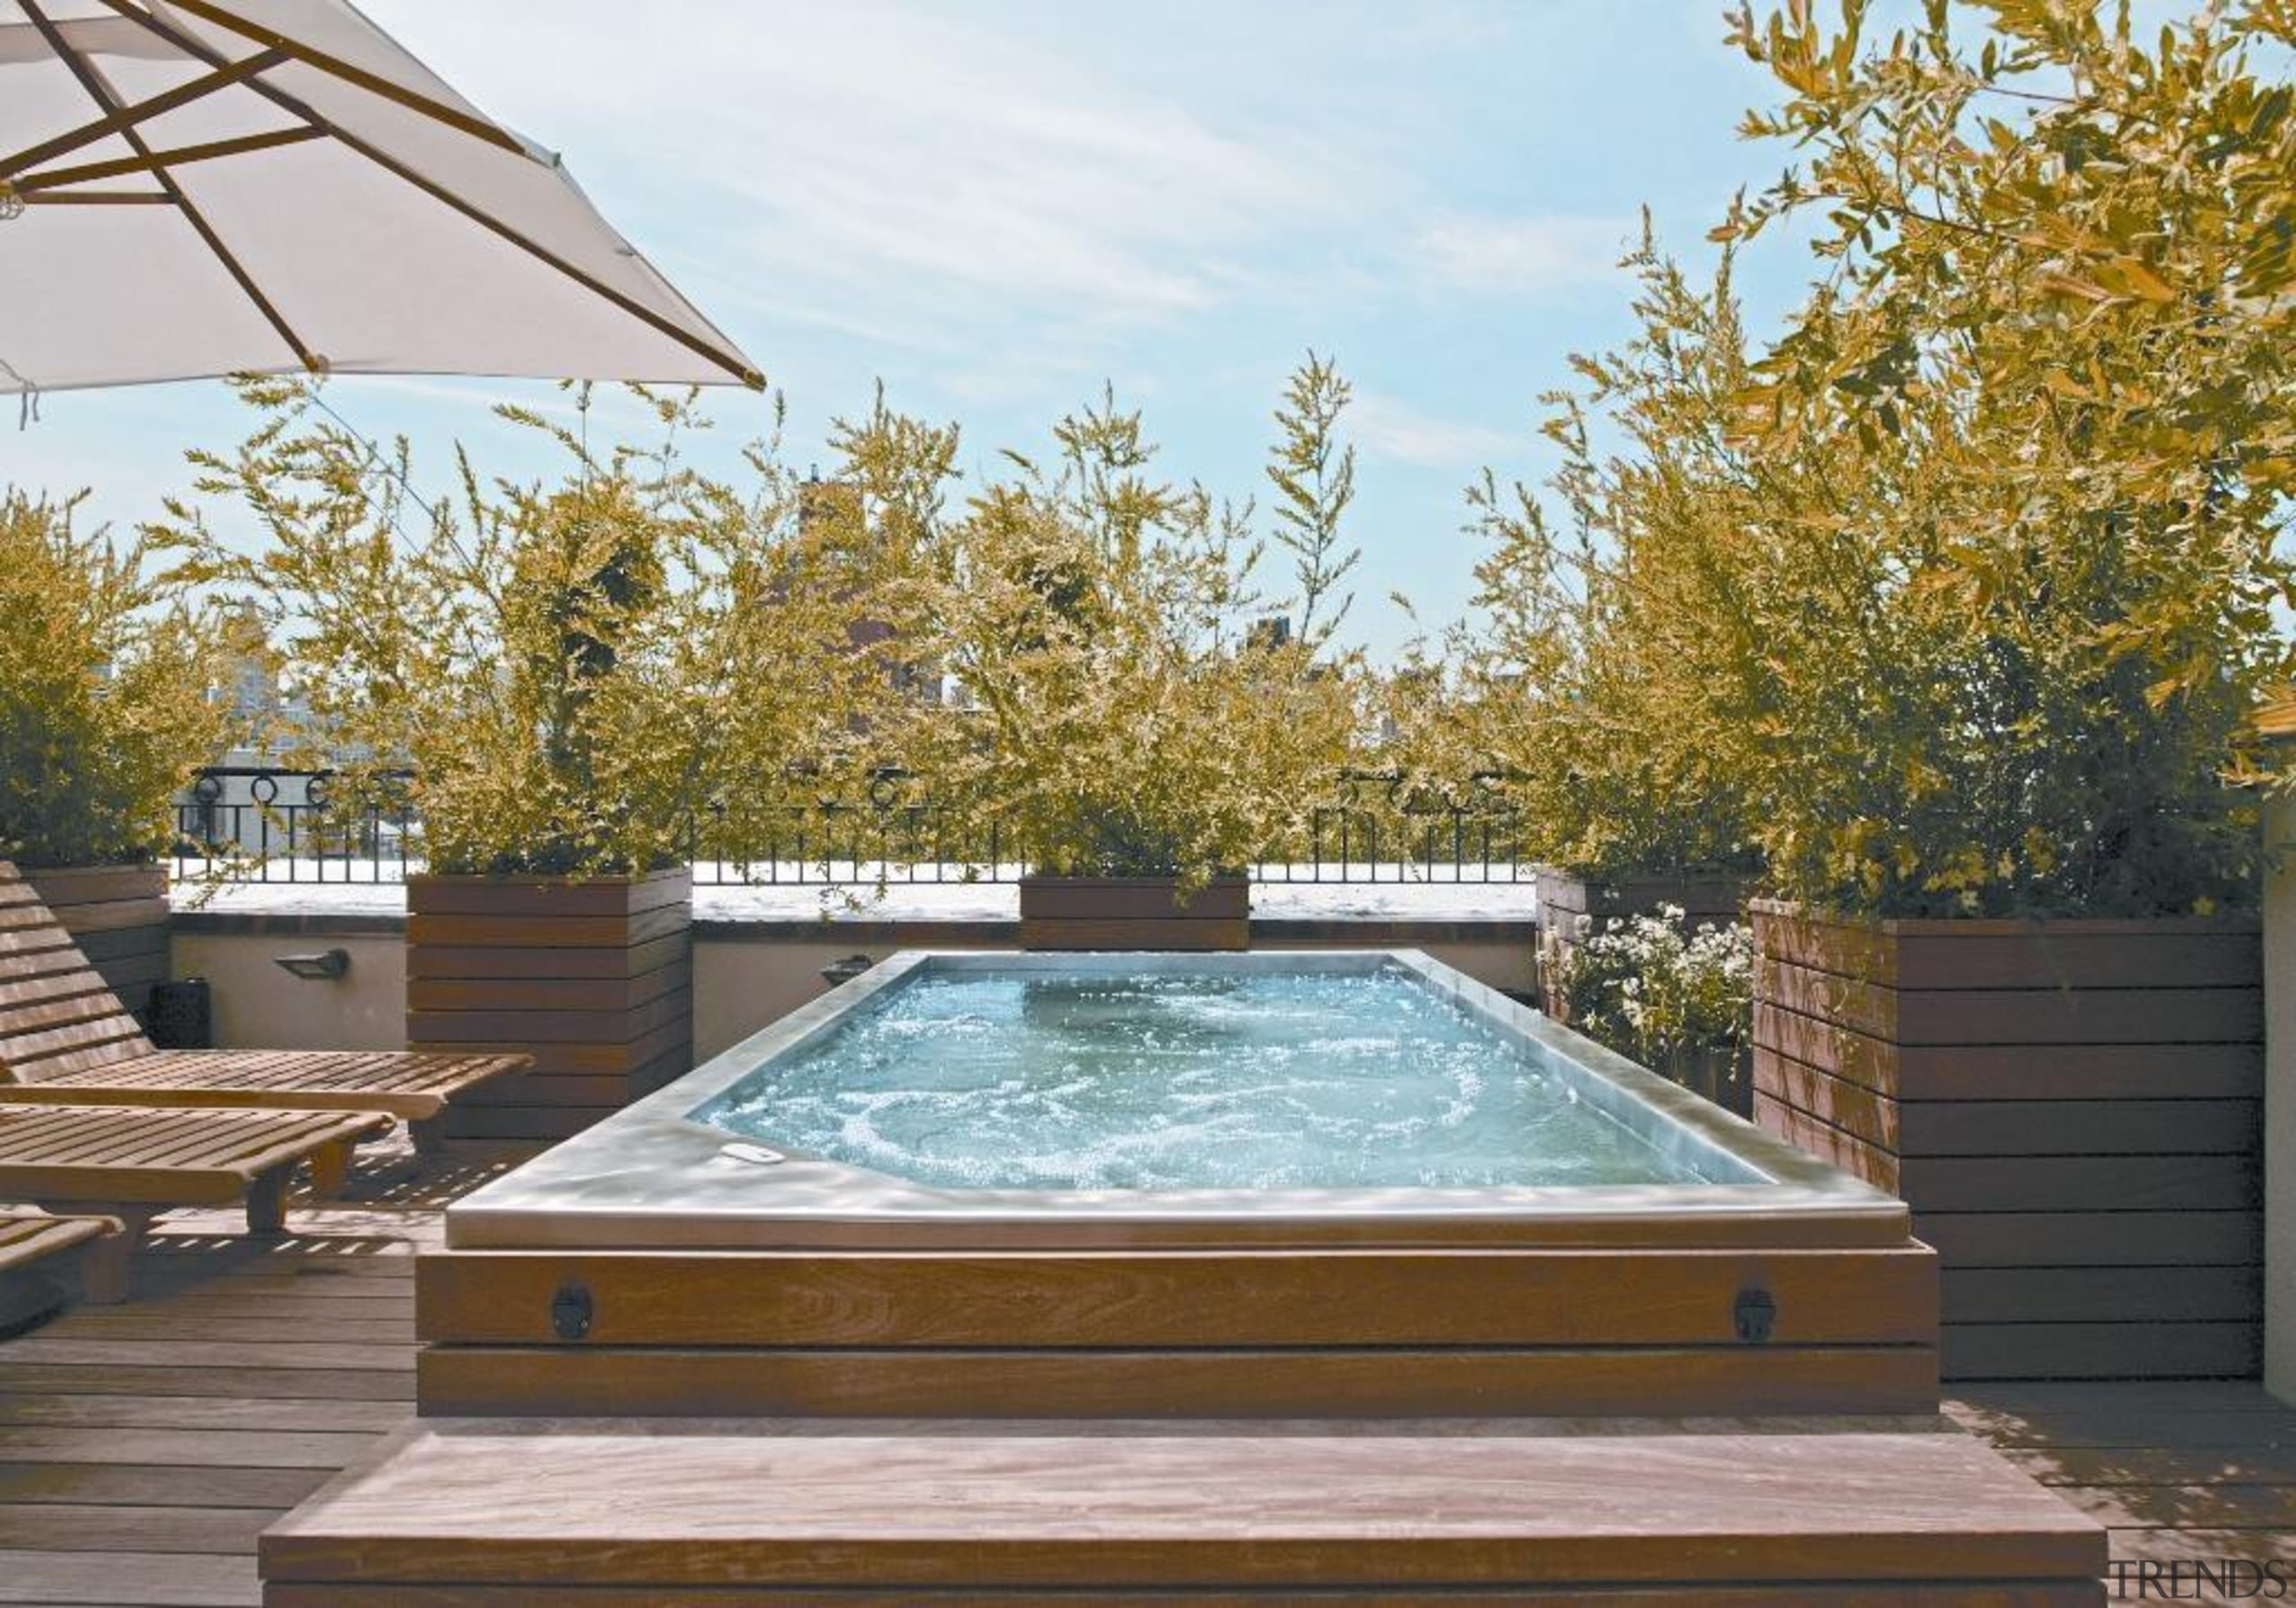 Rooftop Stainless Steel Hot Tub with Built in daylighting, outdoor structure, property, real estate, swimming pool, brown, white